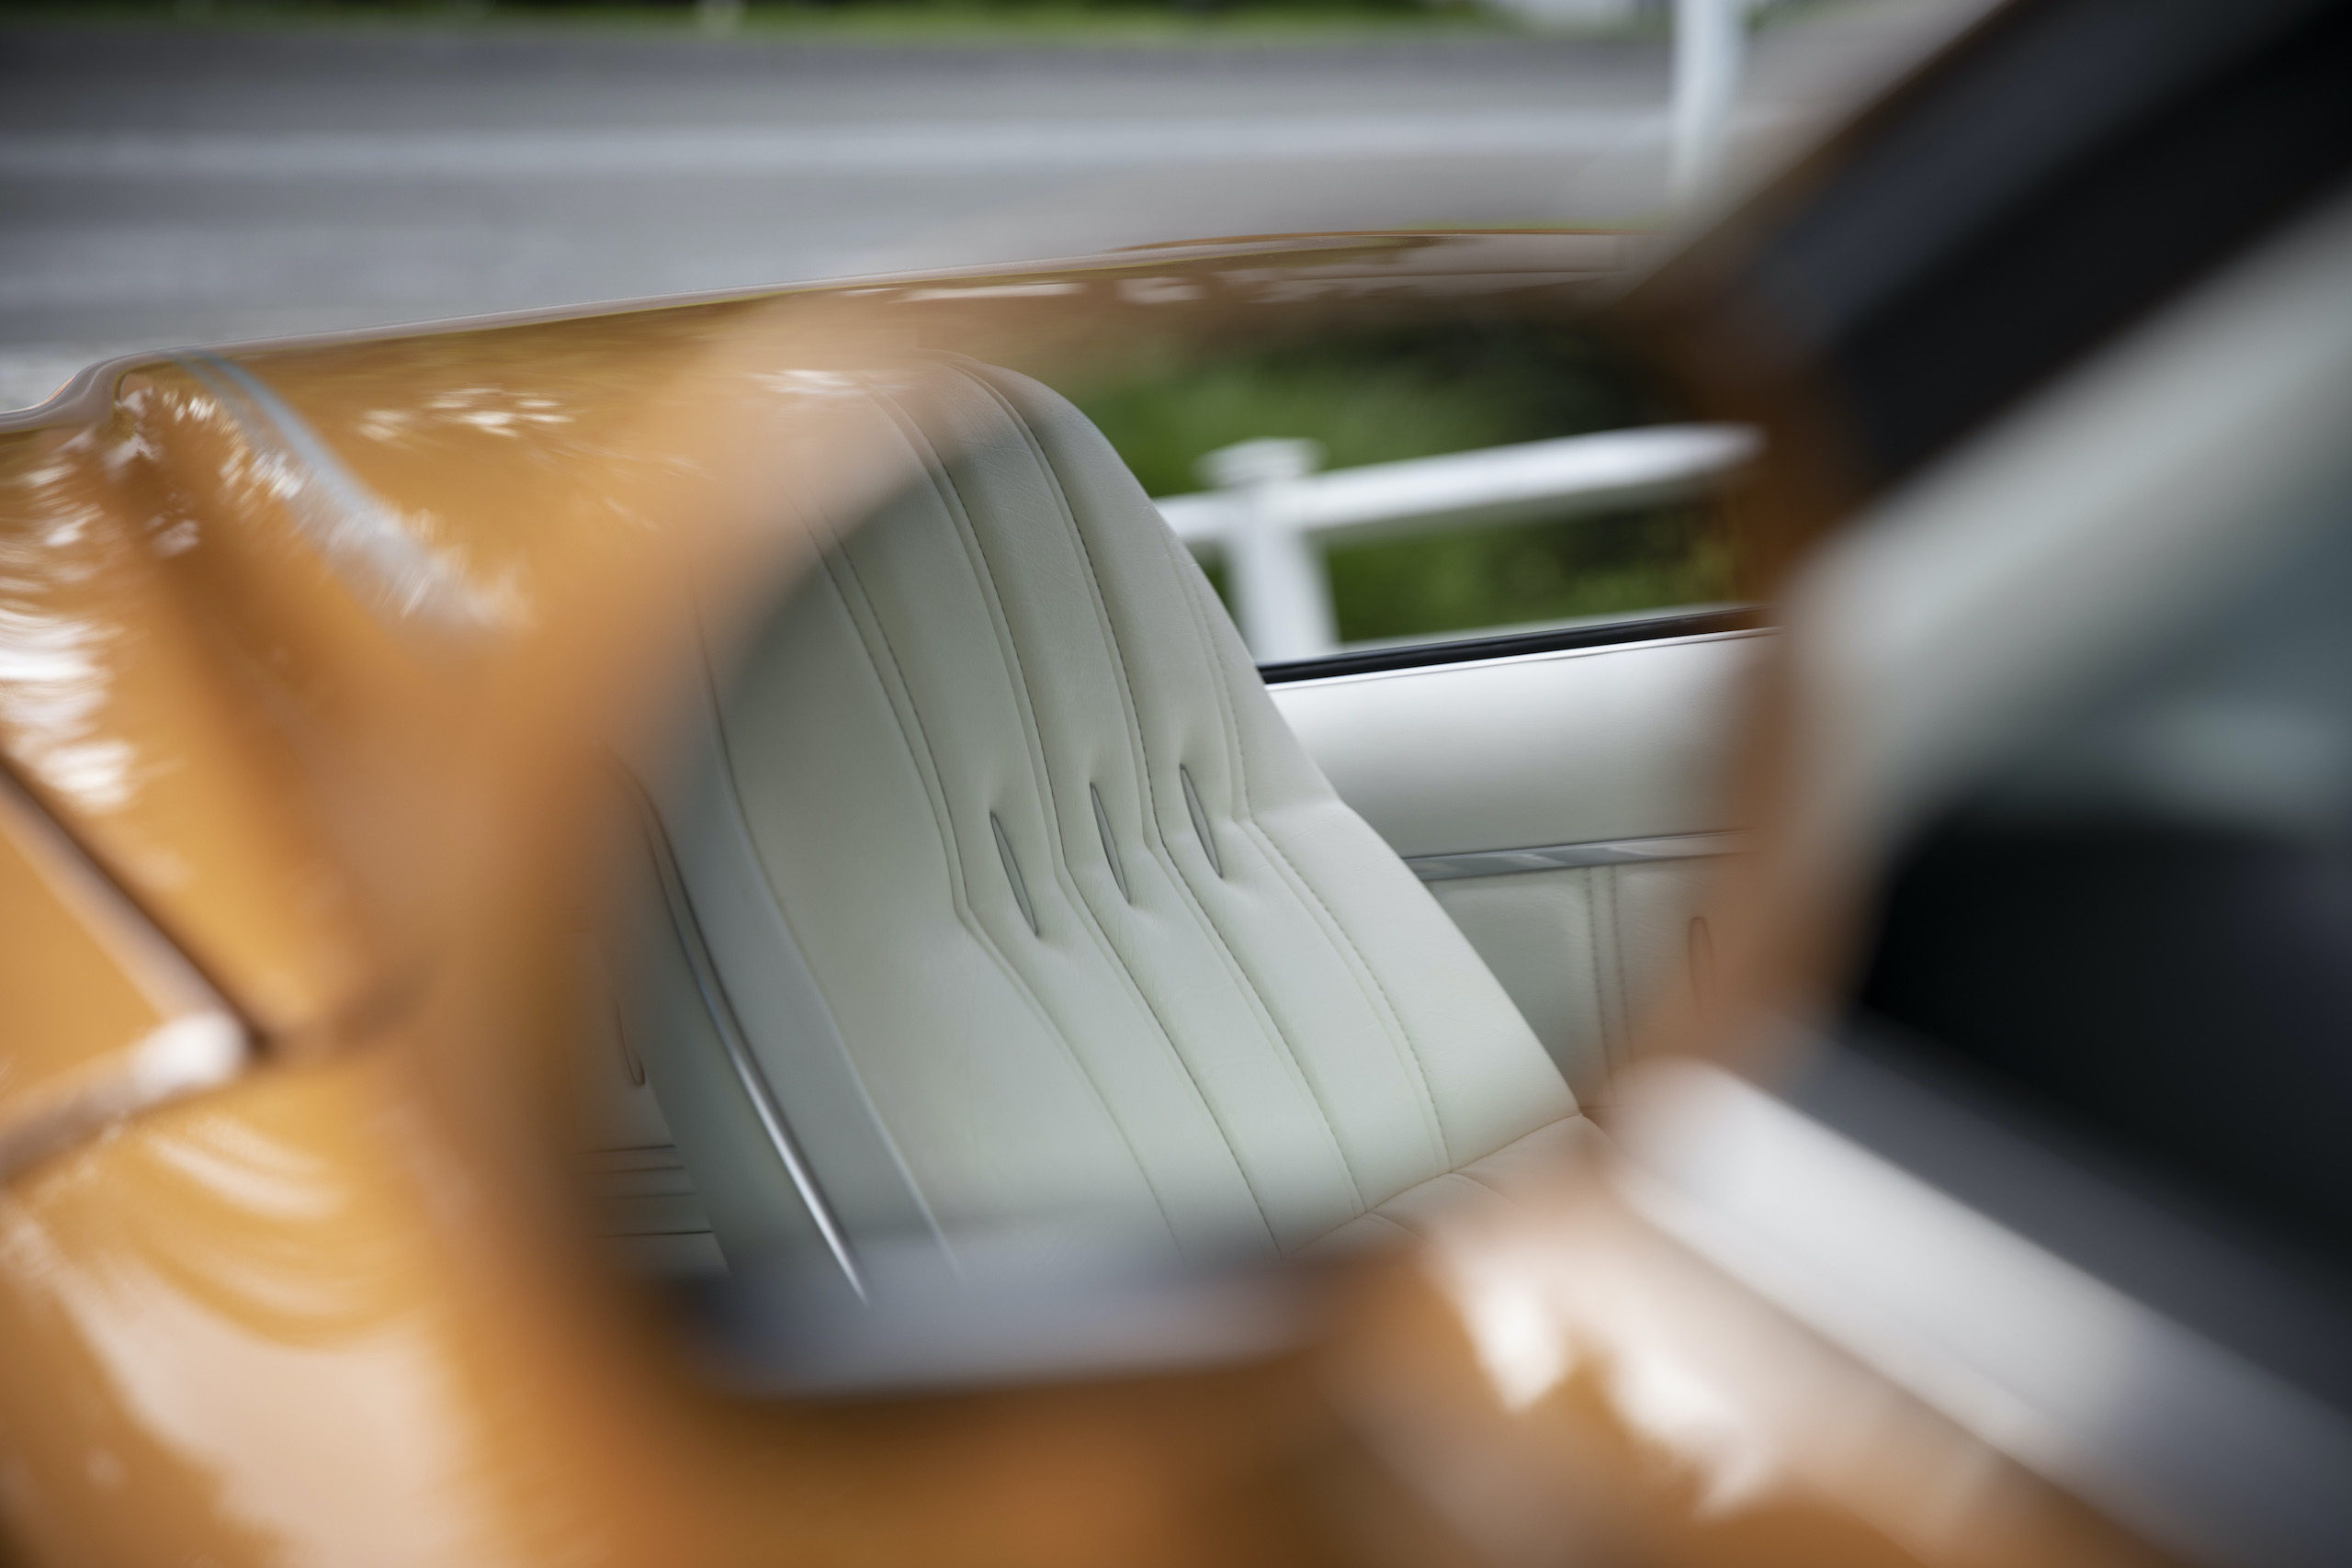 1973 Buick GS Stage 1 gran sport coupe mirror seat